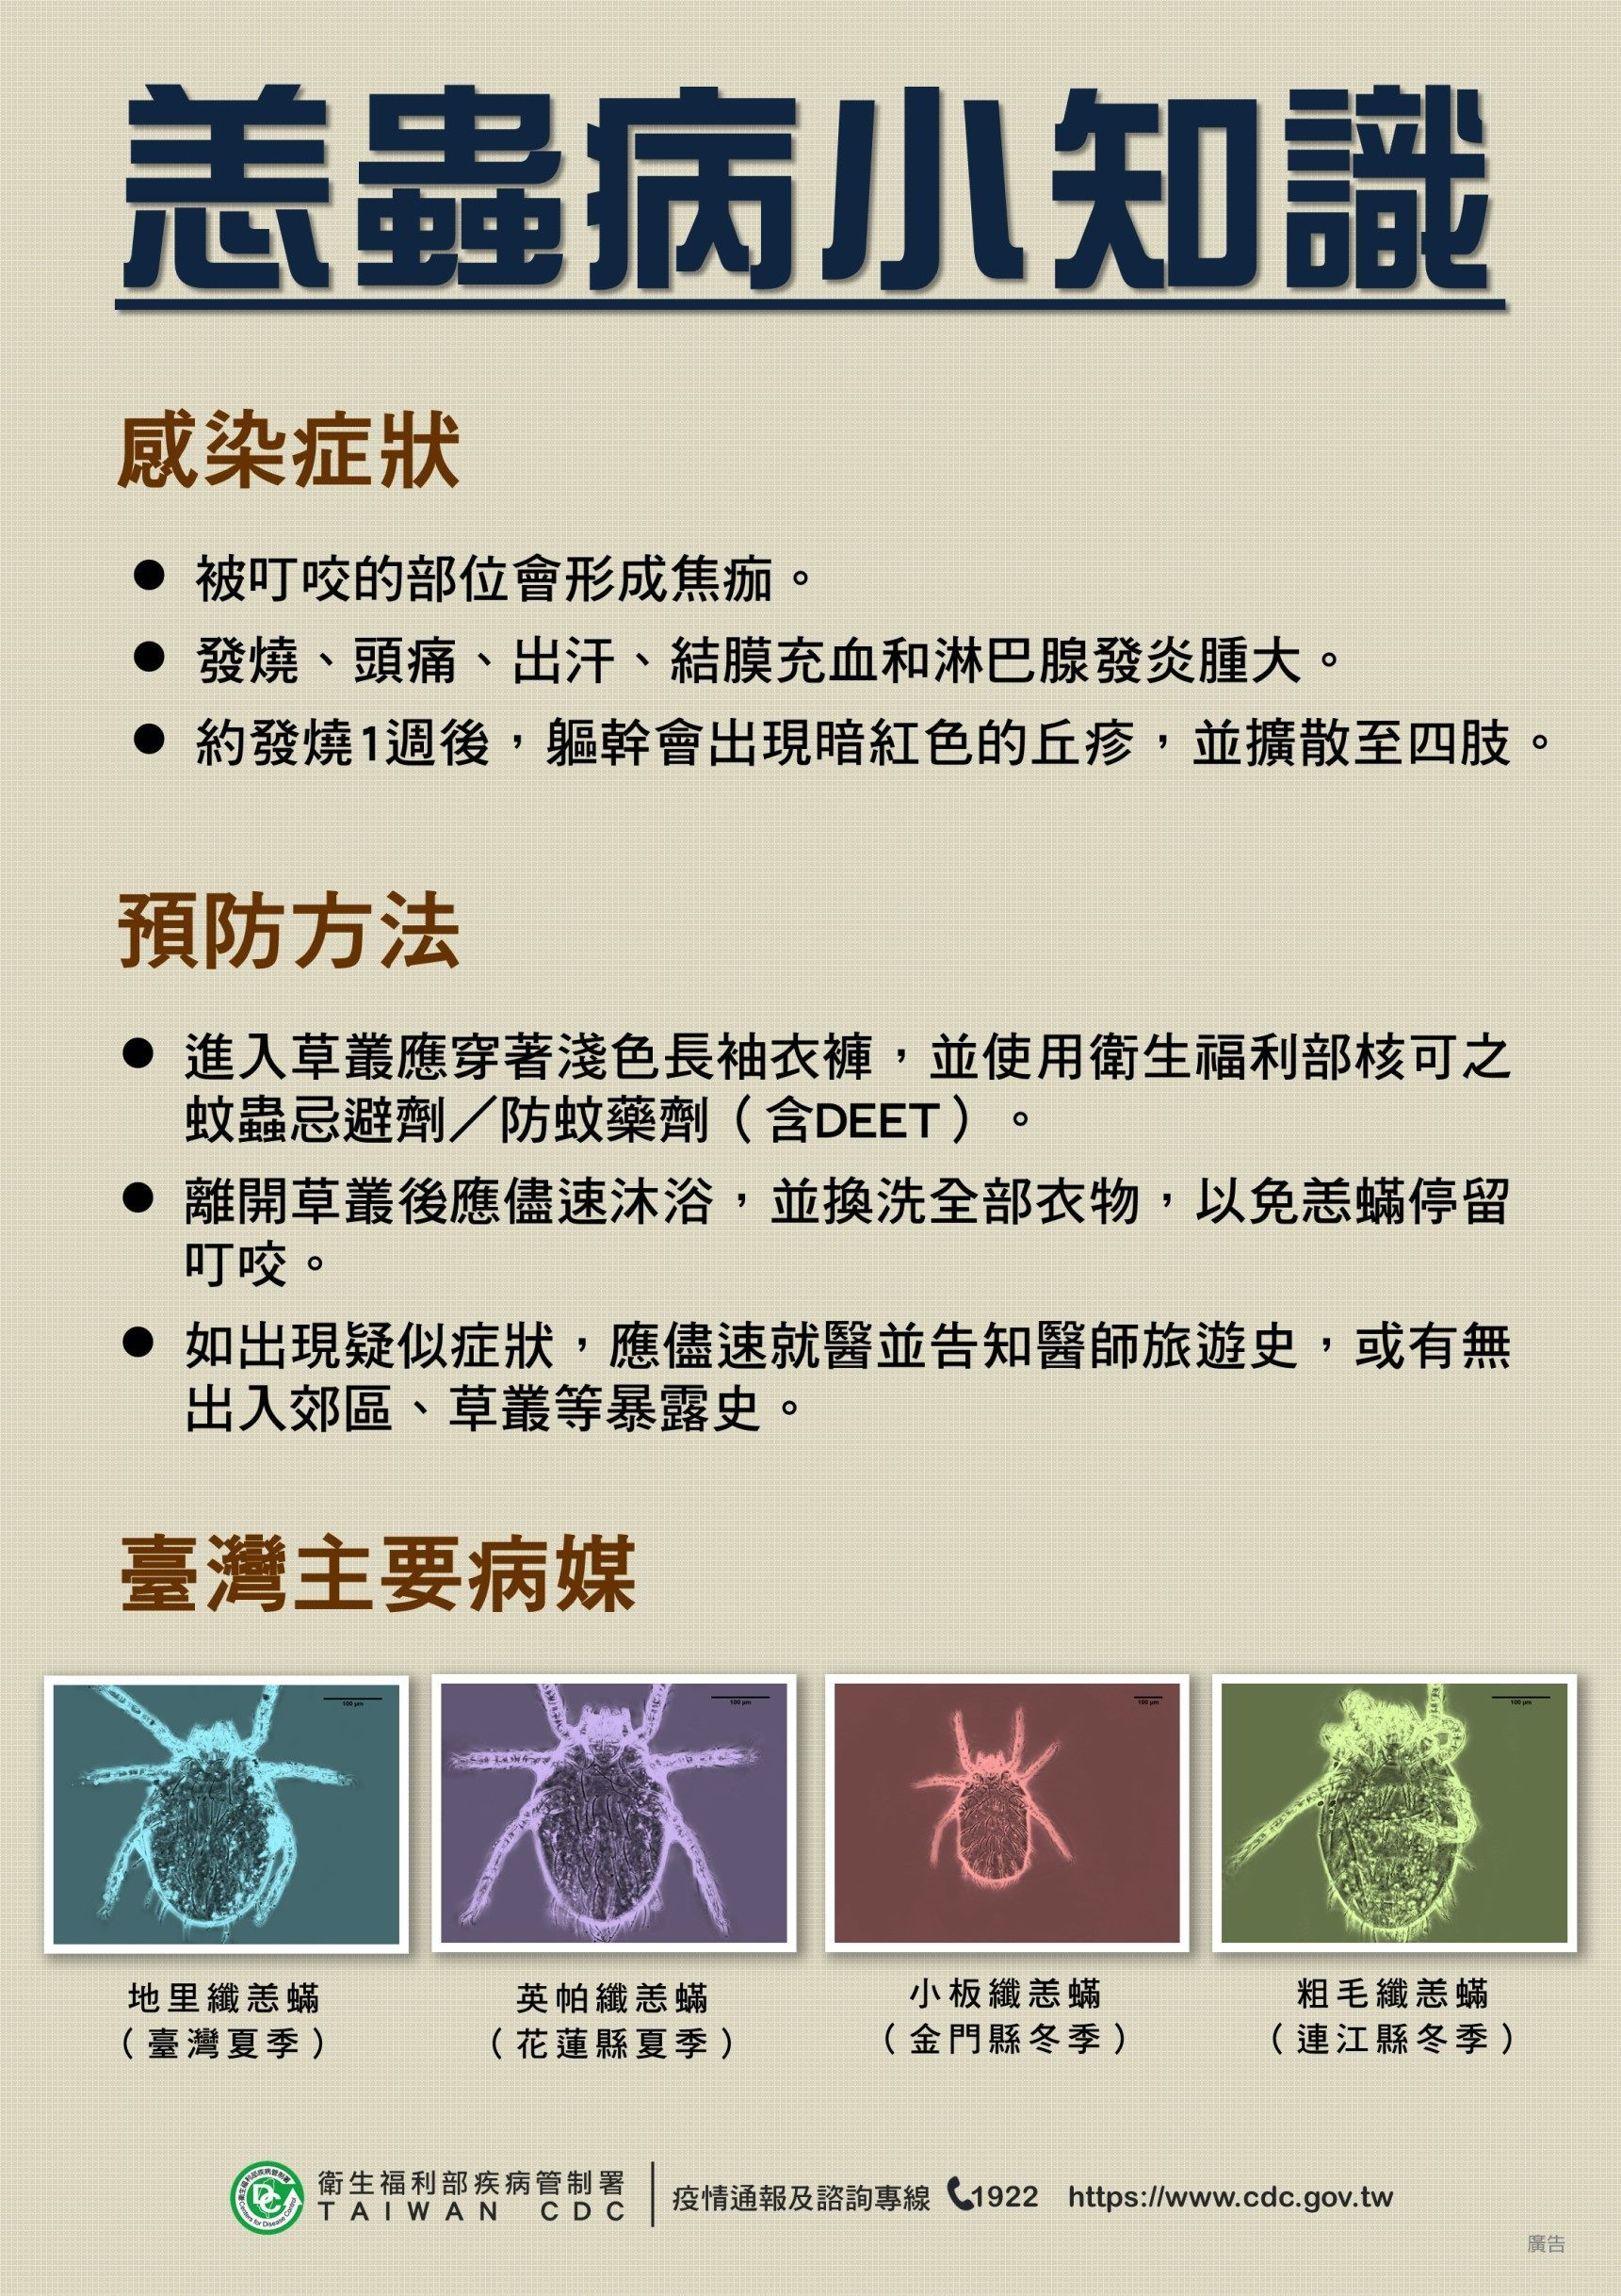 Poster on chiggers on how to protect oneself from scrub typhus